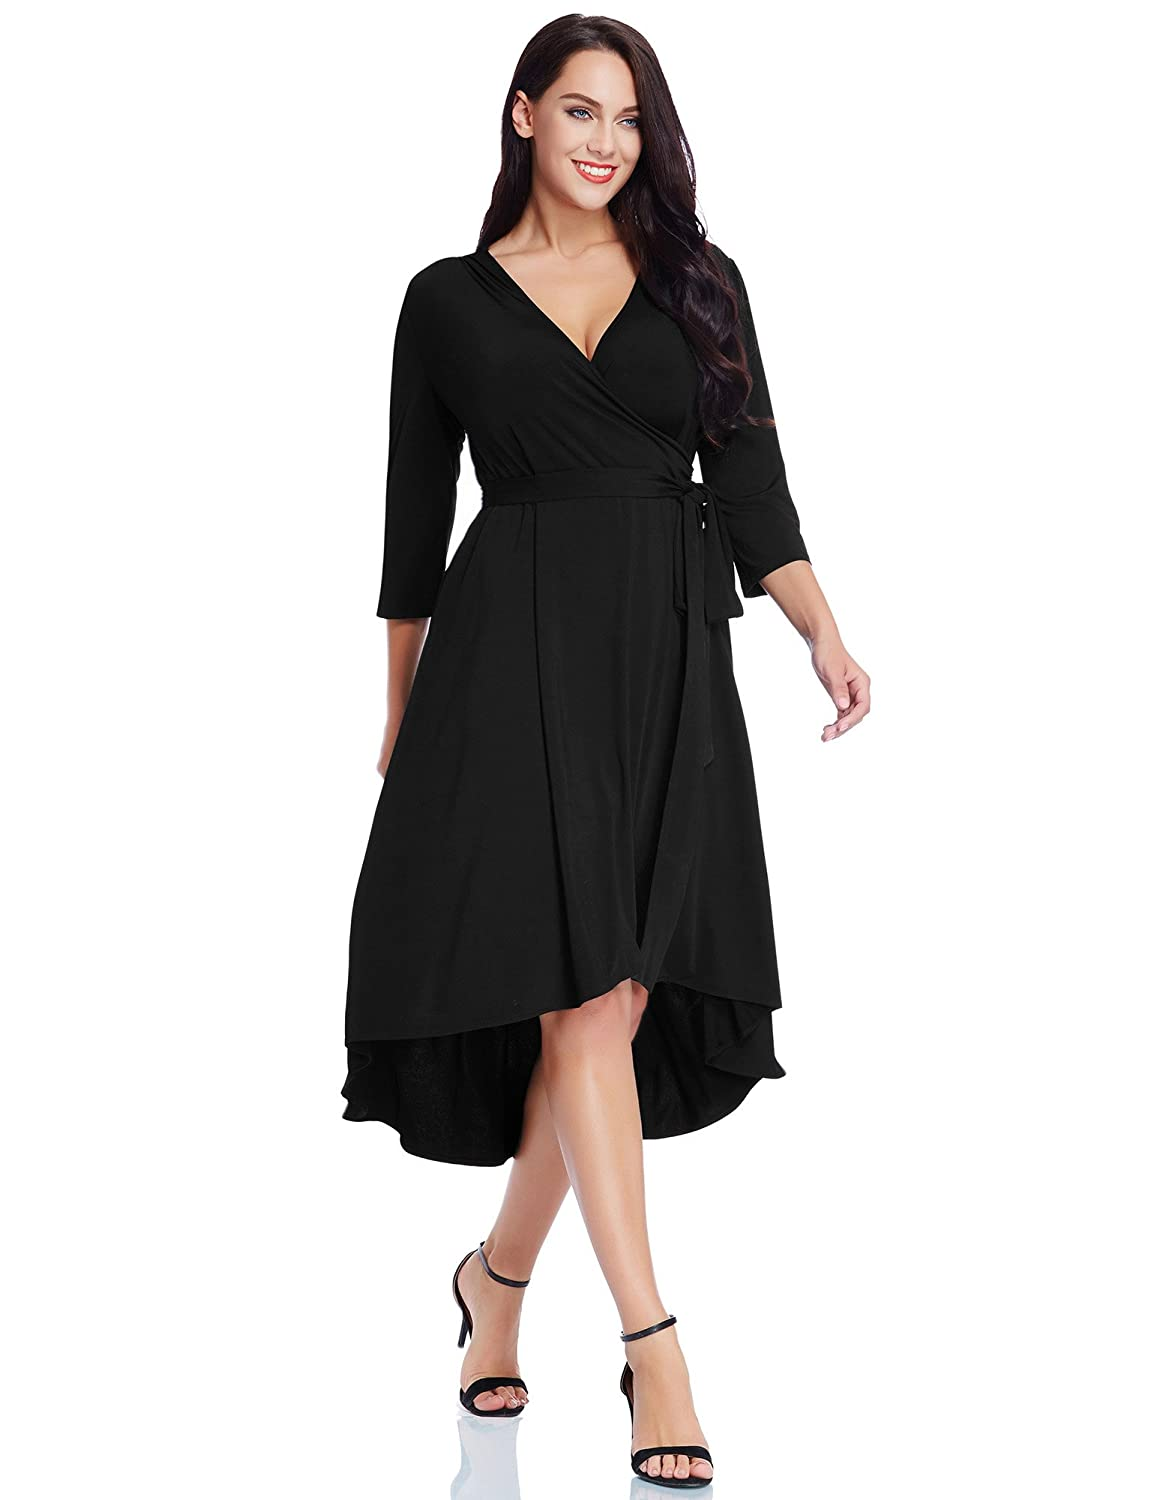 7cb5b284 Top1: GRAPENT Women\'s Plus Size Solid V Neck Knee Length 3/4 Sleeve Hi Lo  True Wrap Dress